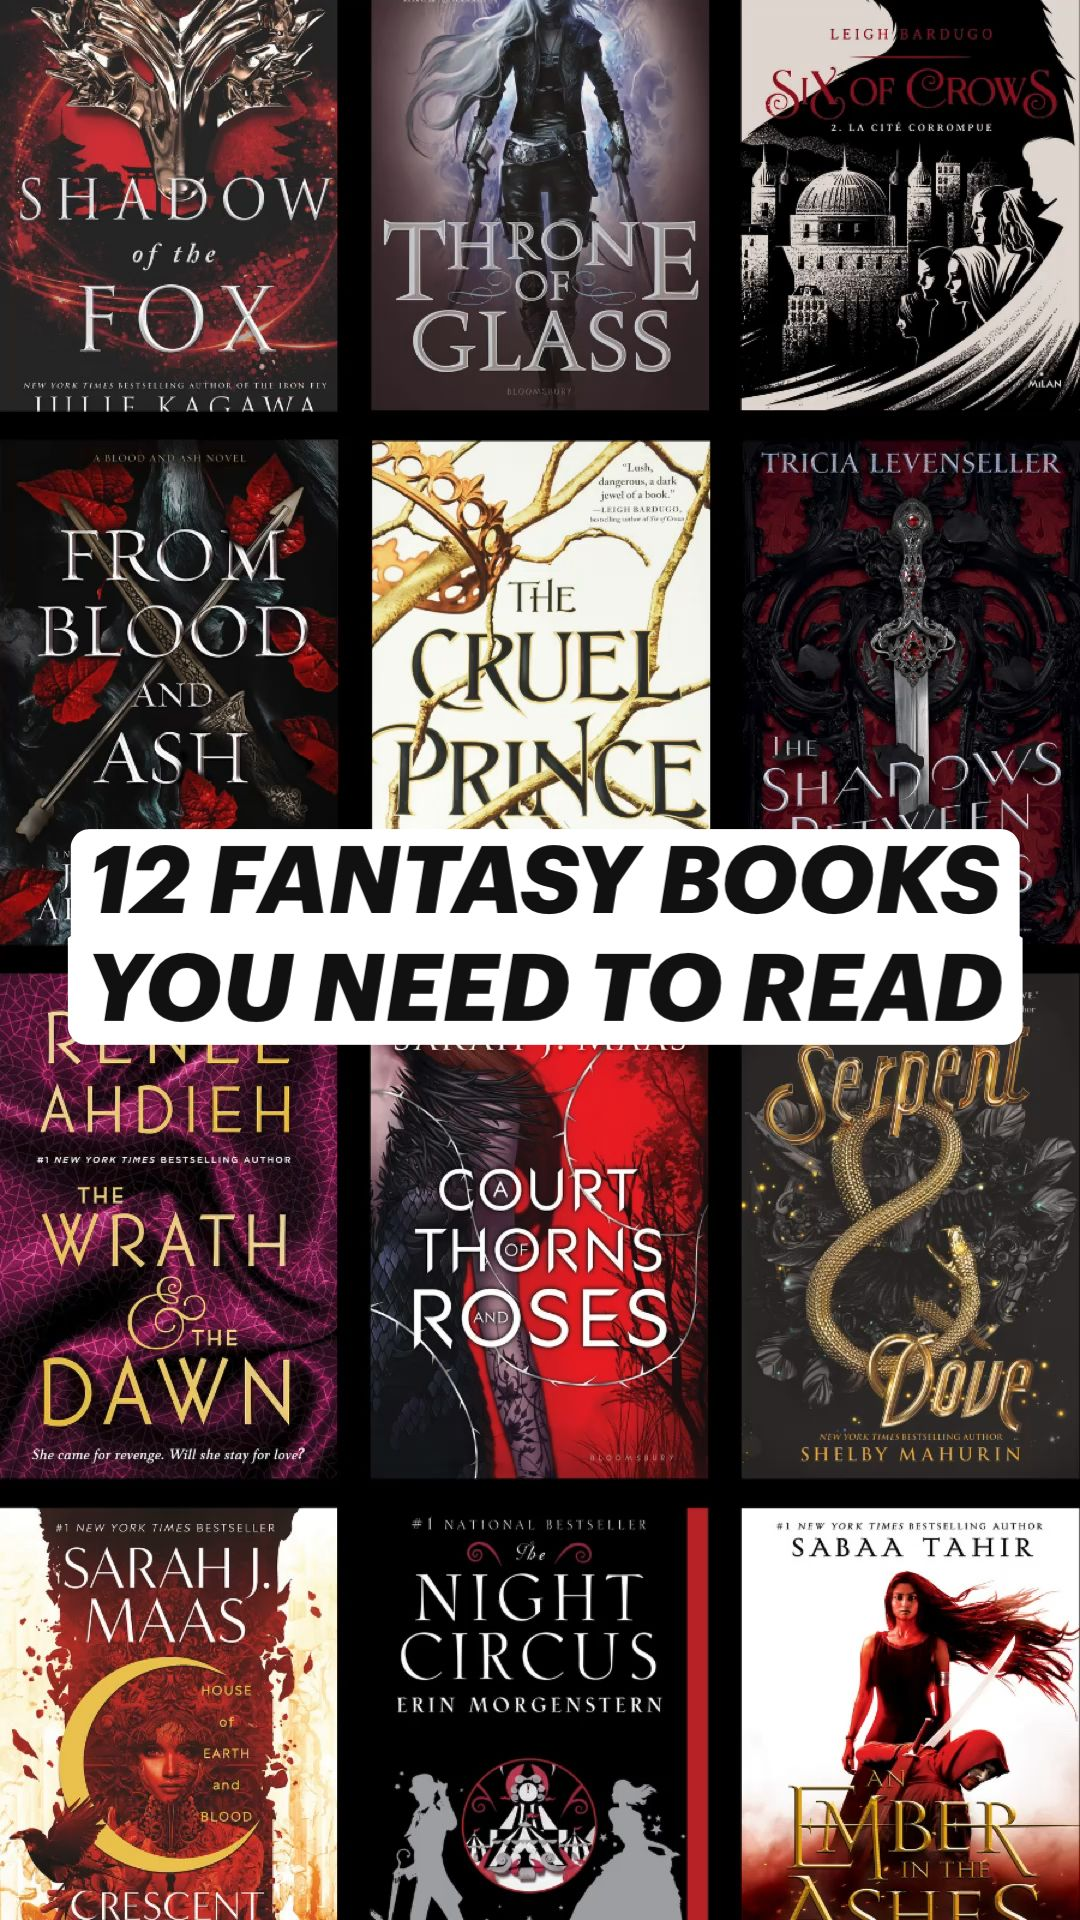 12 Fantasy Books You Need To Read